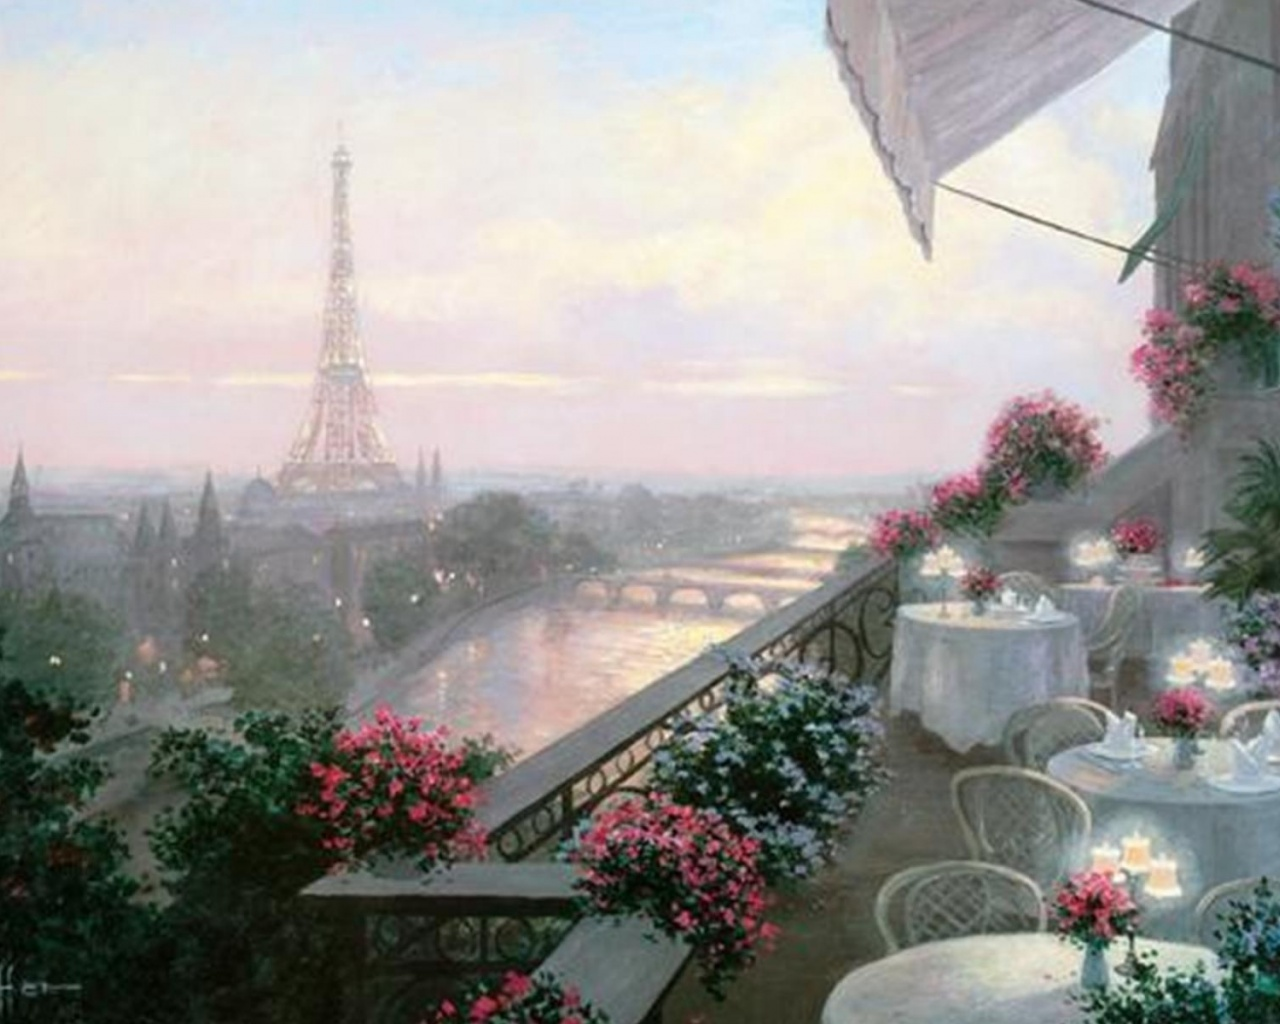 Fall Wallpapers Pc 1280x1024 Parisian Cafe Eiffel Tower Desktop Pc And Mac